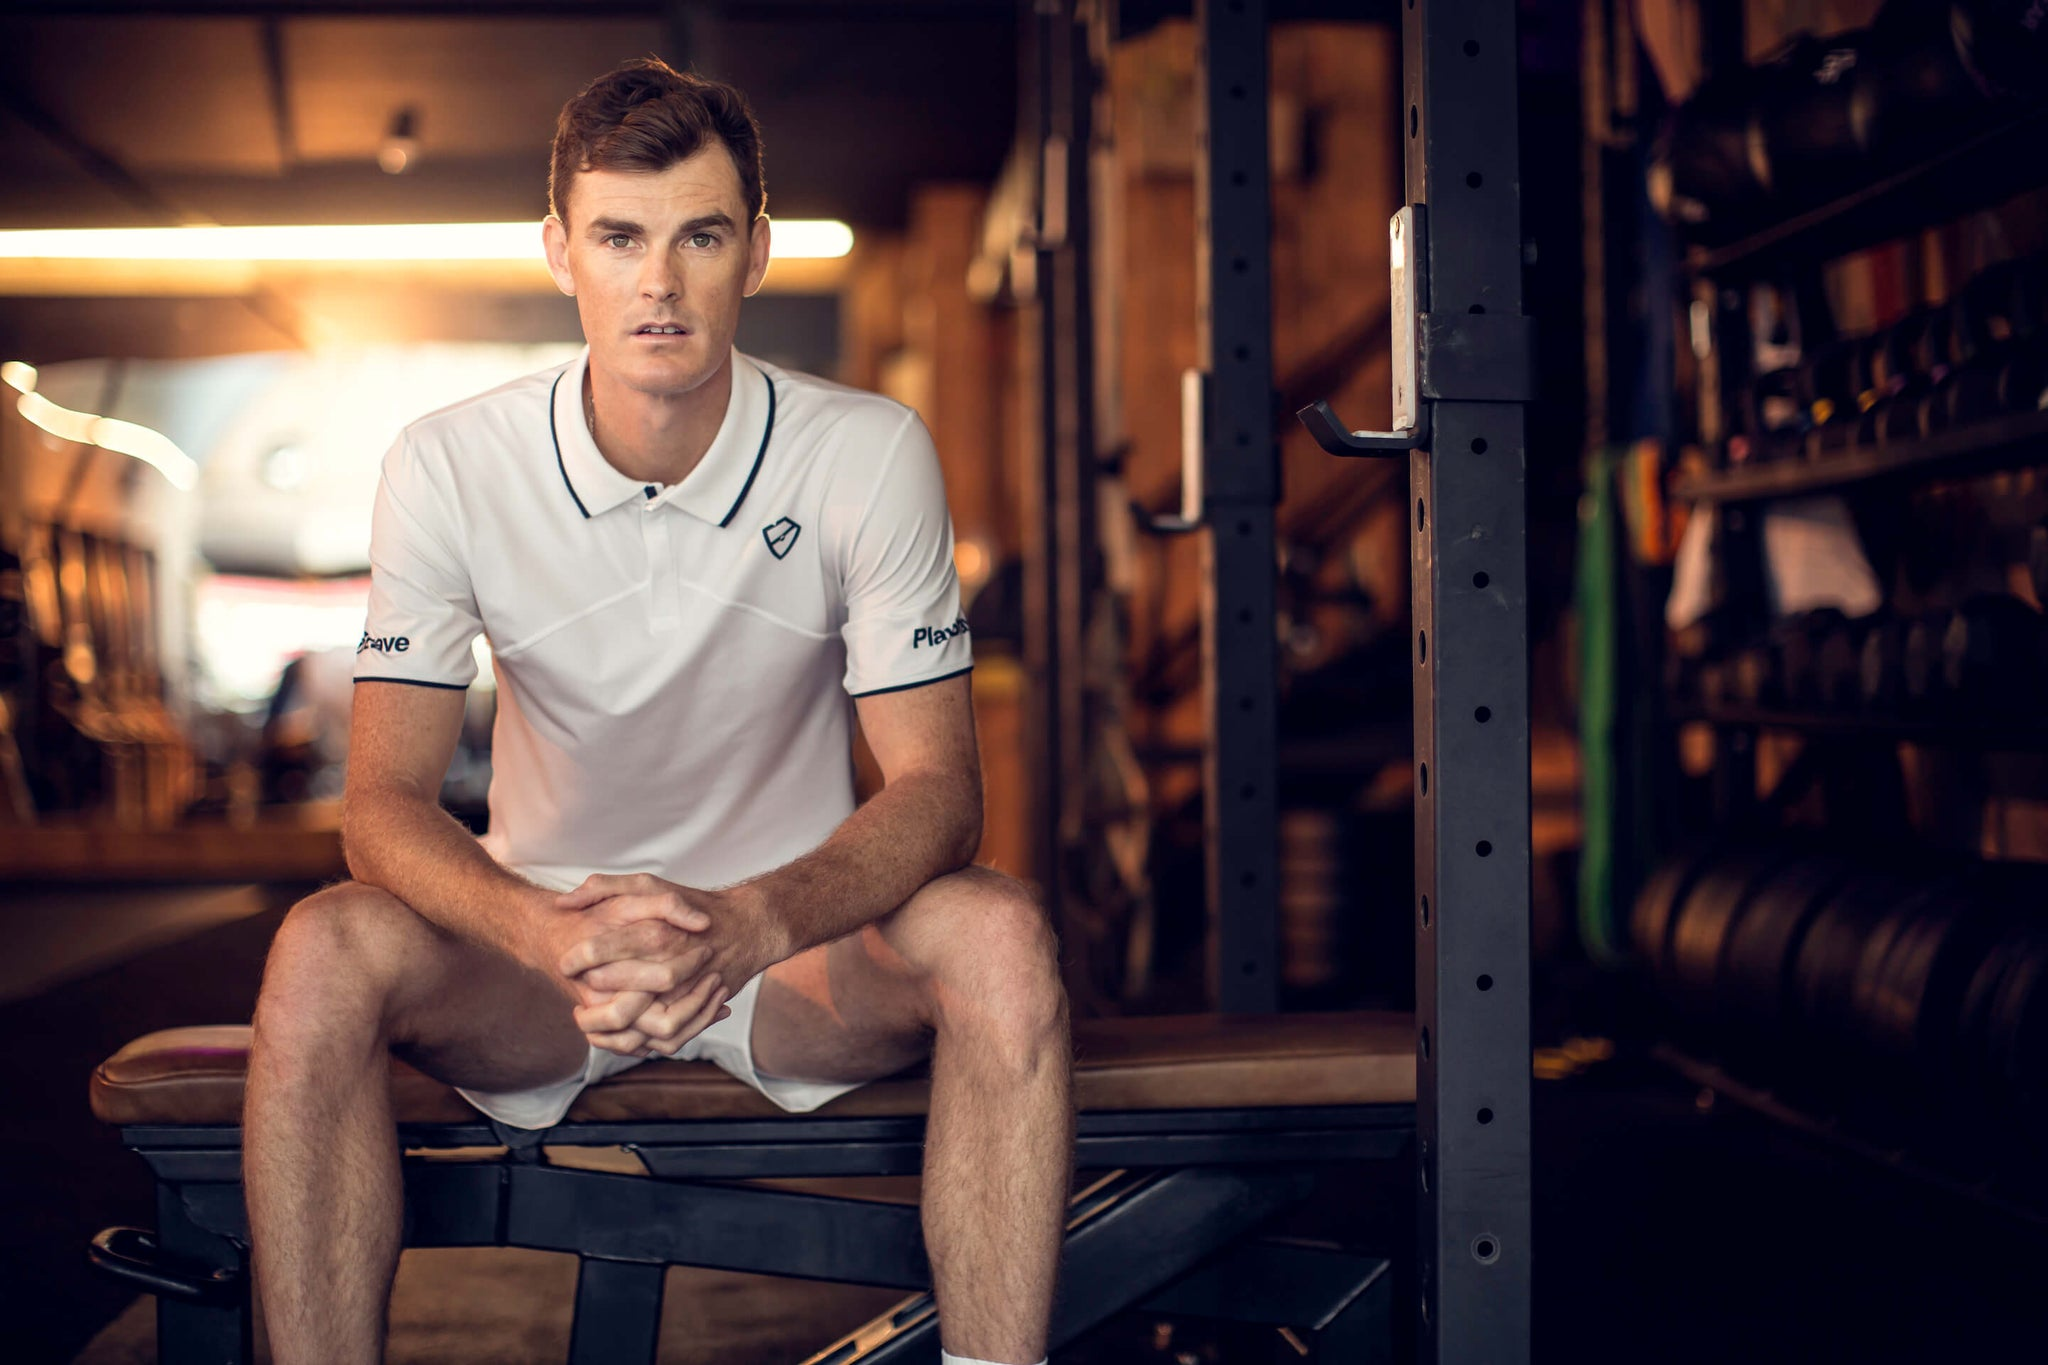 jamie murray playbrave clothing sponsor tennis kit announcement press release